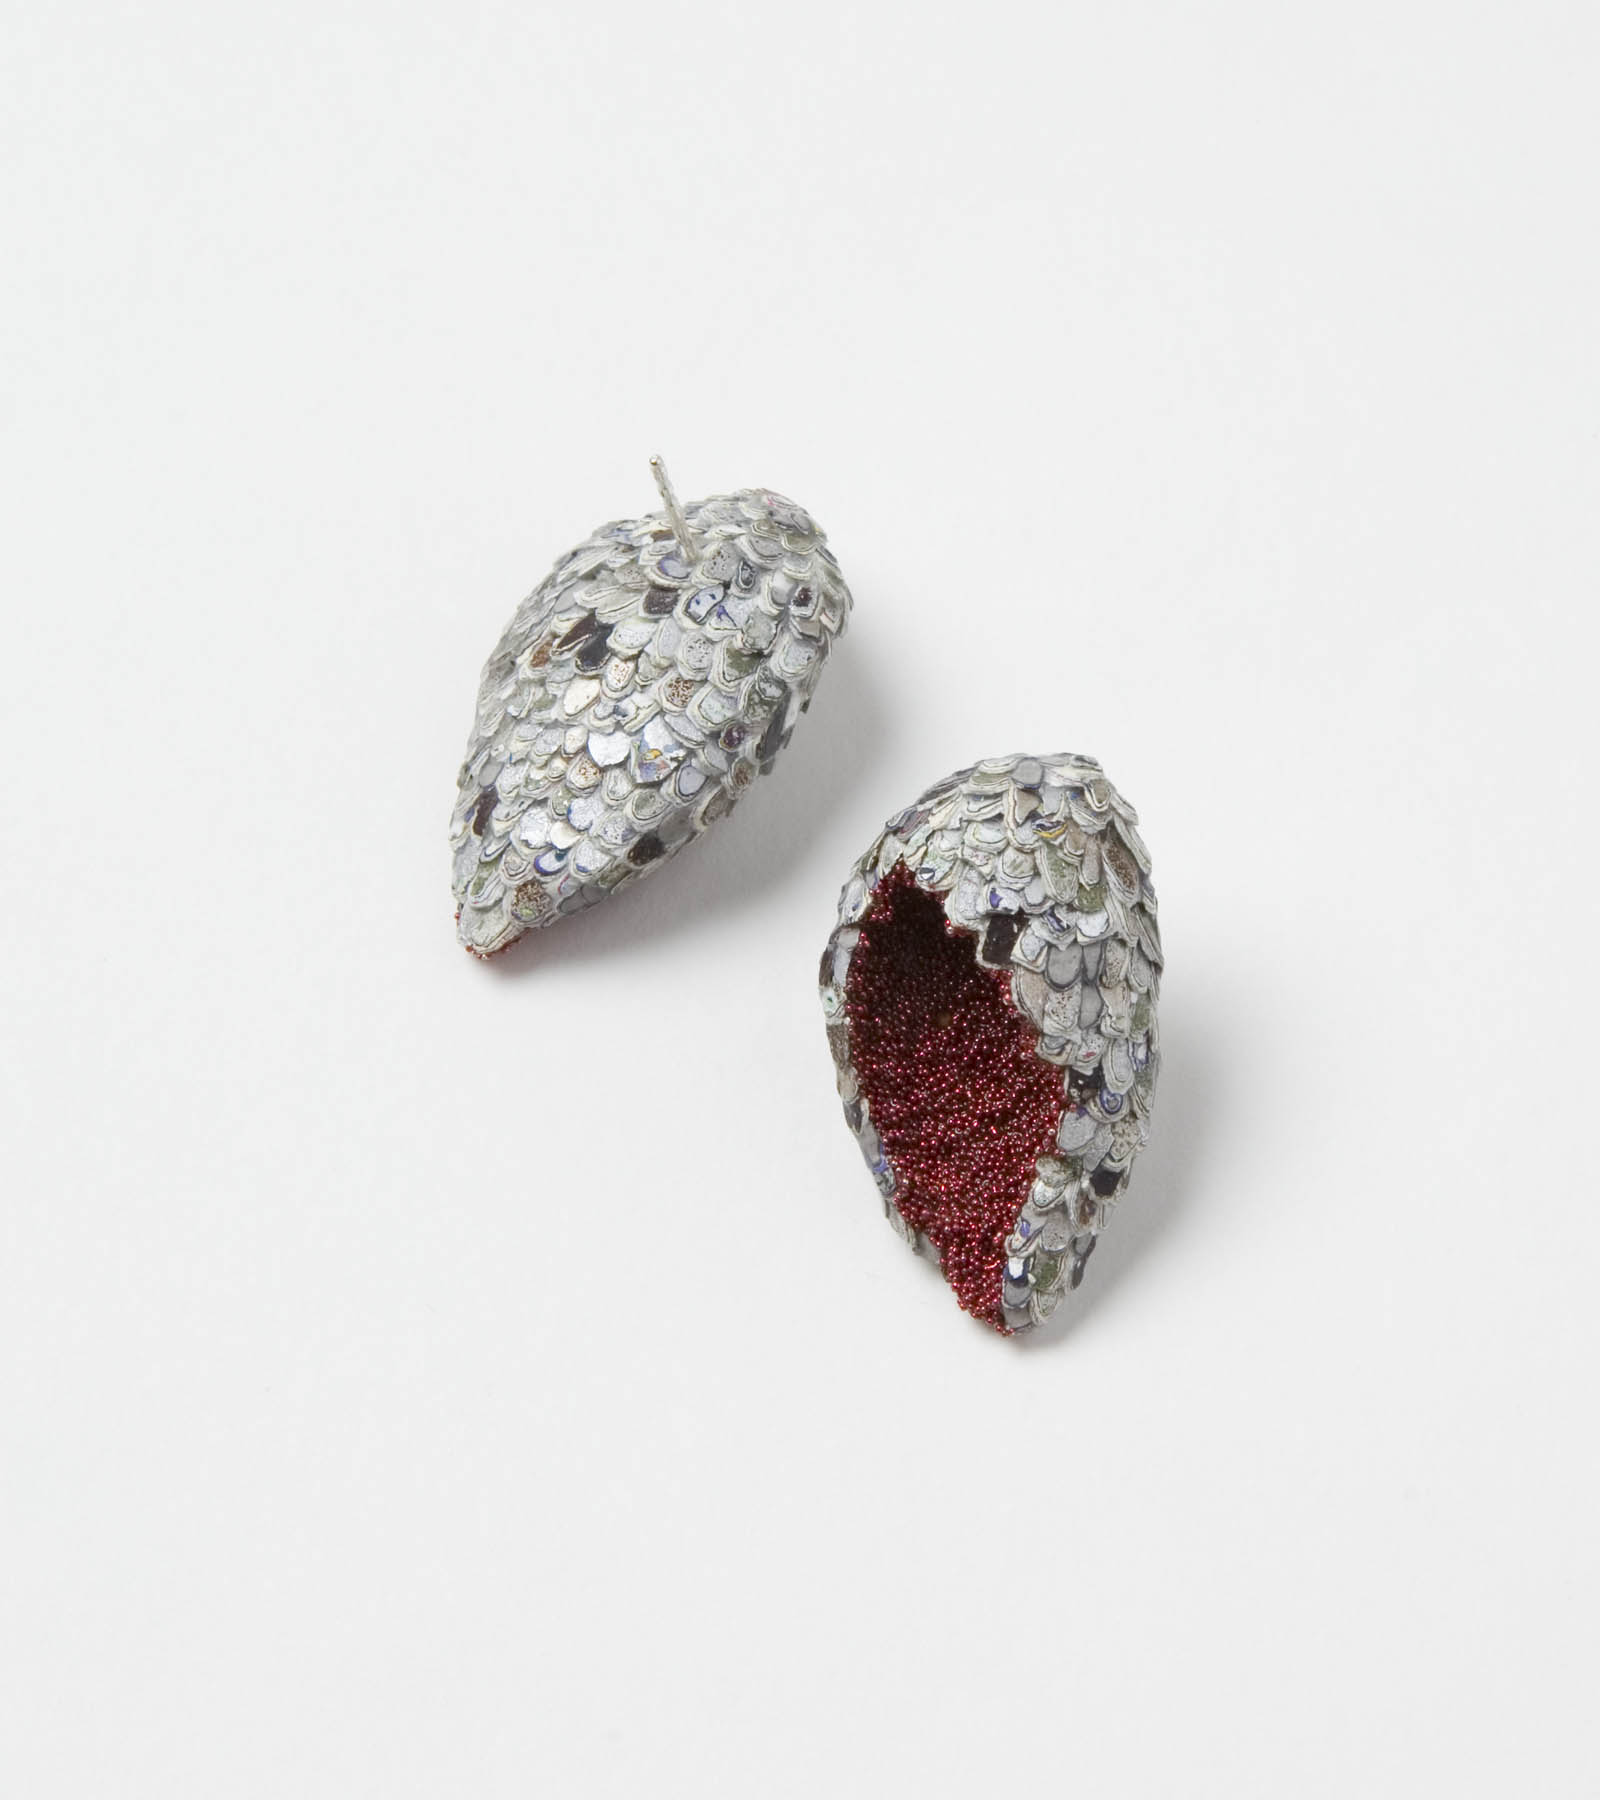 """Wing Shaped Karma Chroma Earrings"" I Earrings, 2016 I Graffiti, almond shells, glass, silver  I Photo: Mirei Takeuchi"